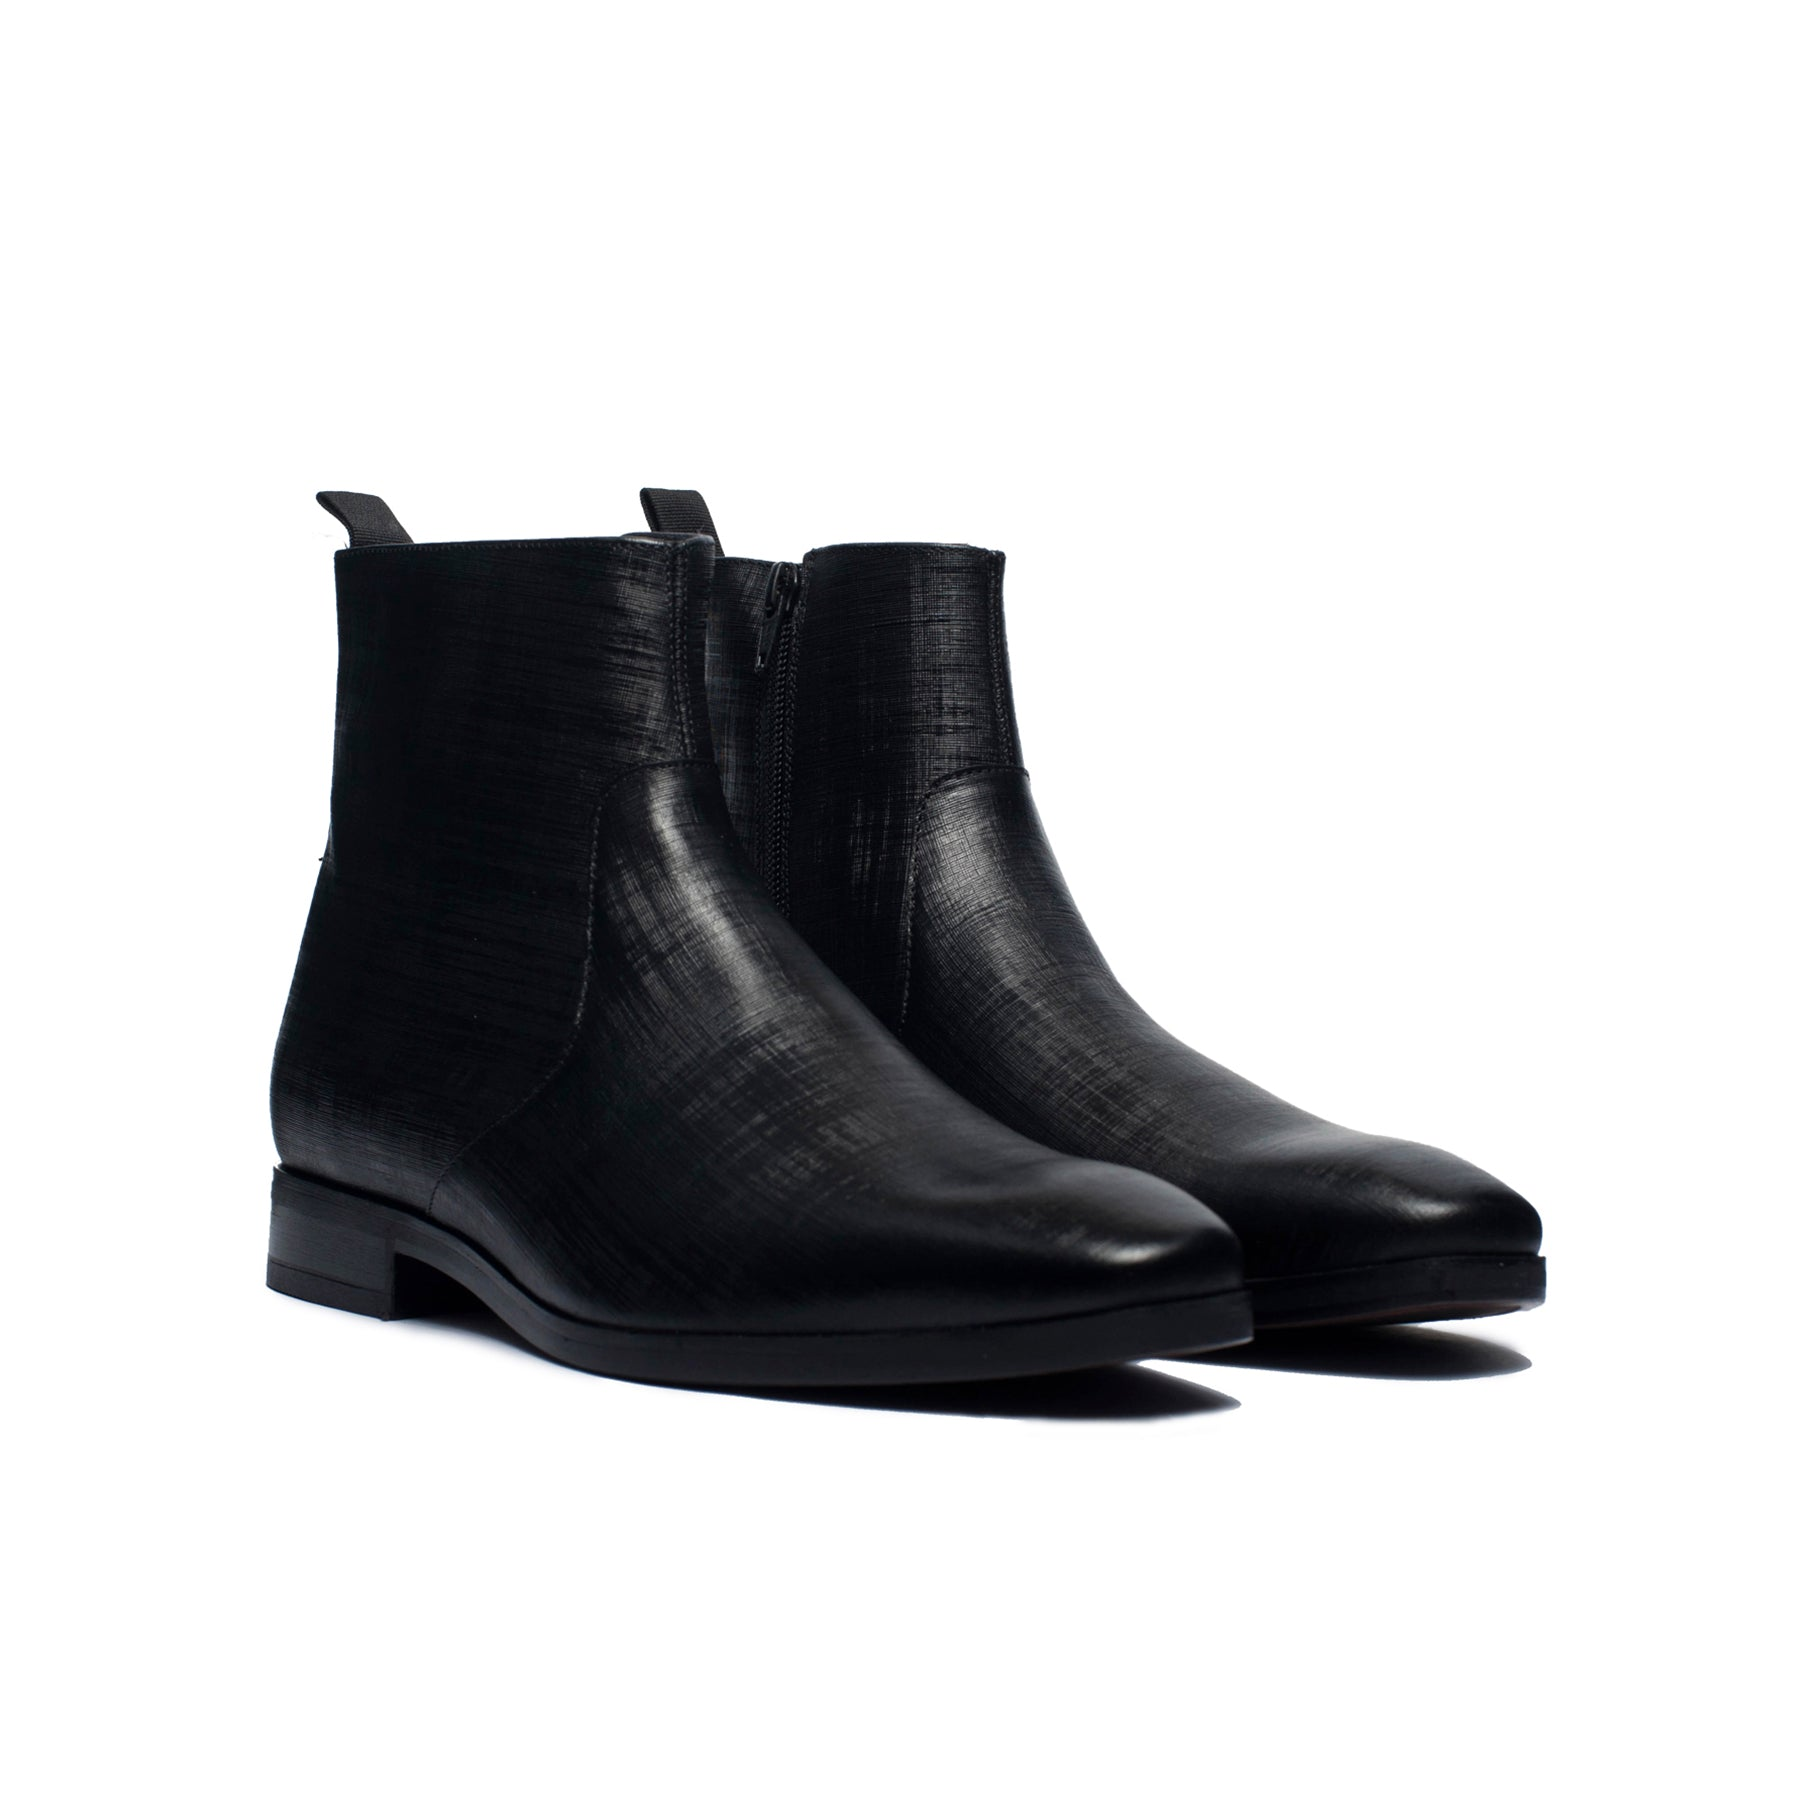 John Black Leather Boots